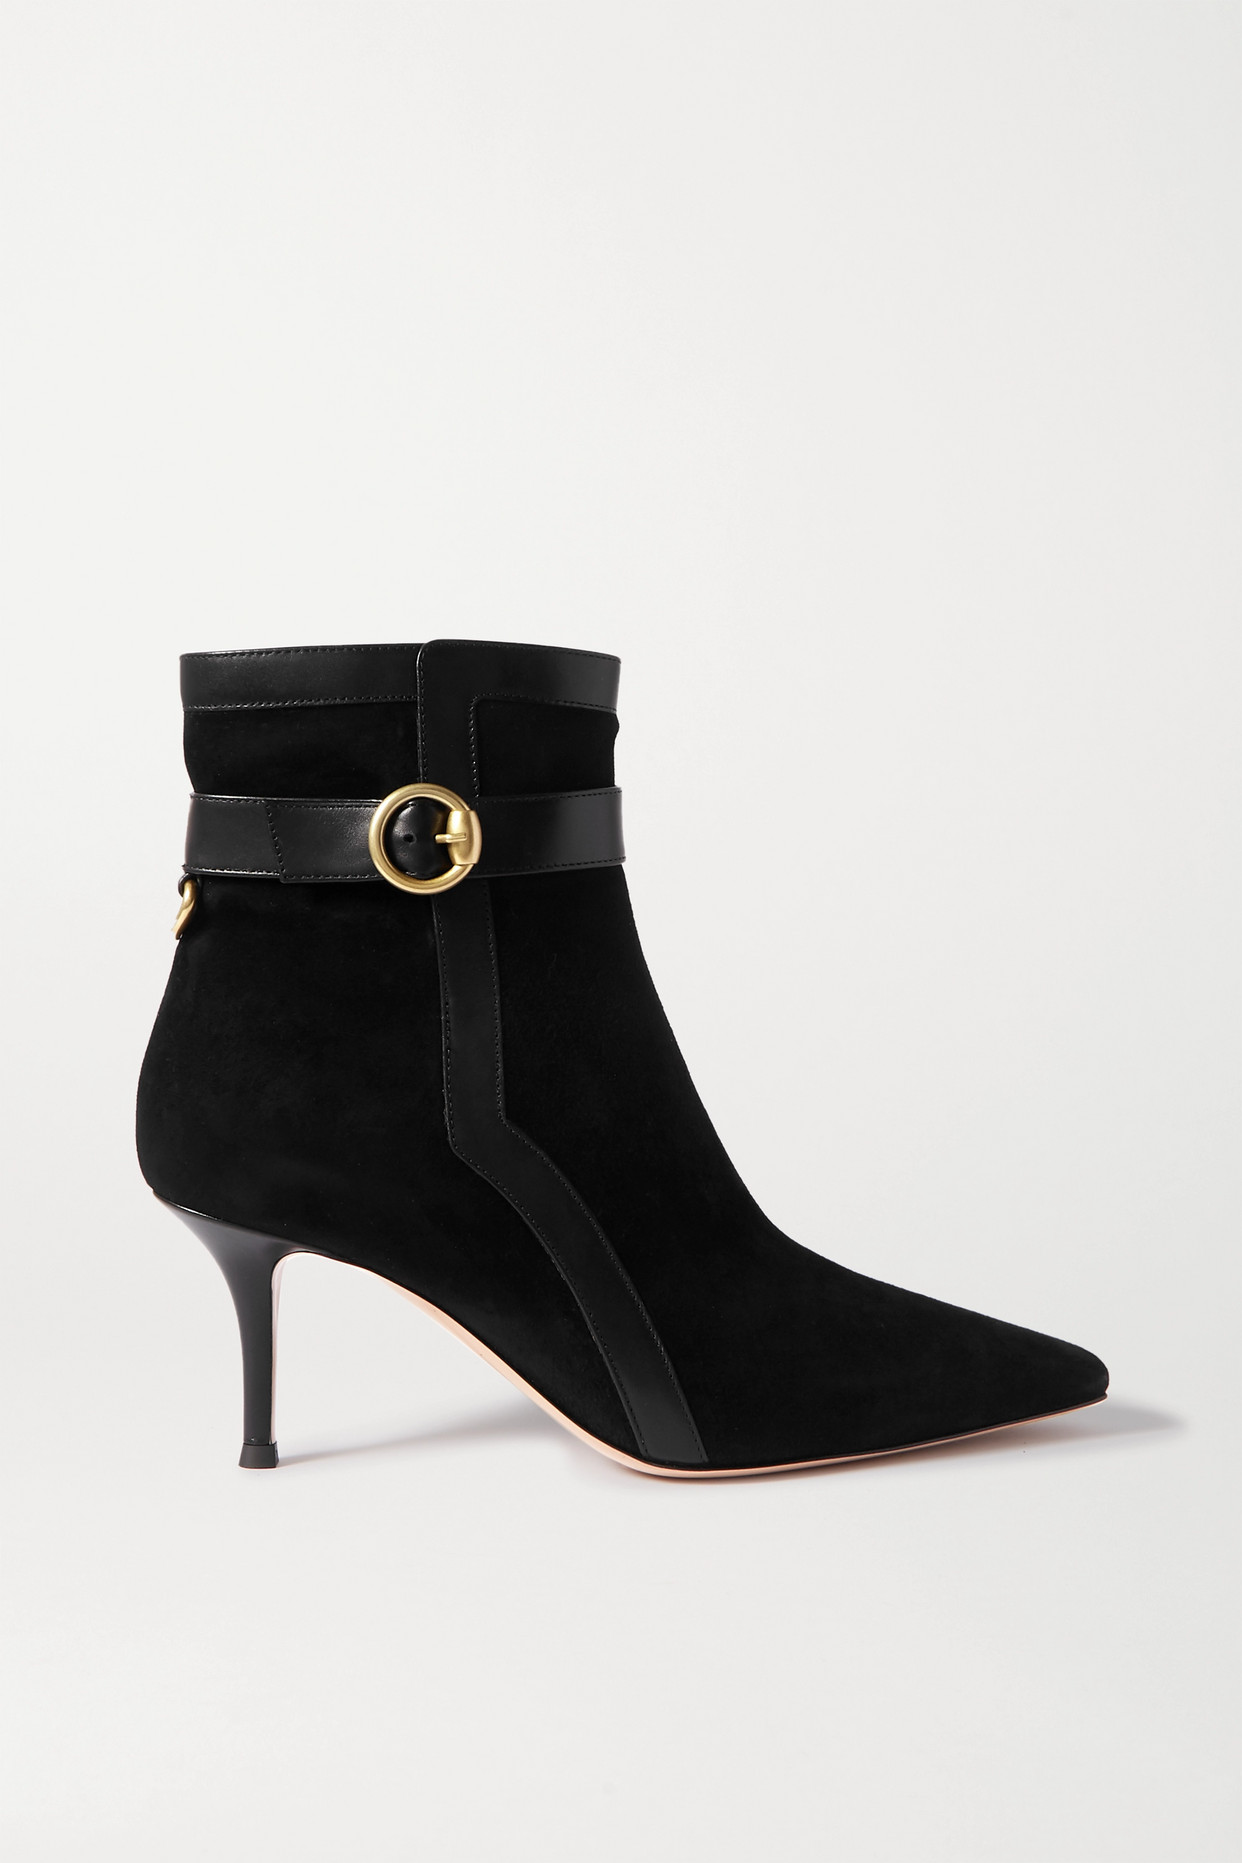 GIANVITO ROSSI - 70 Leather-trimmed Suede Ankle Boots - Black - IT35